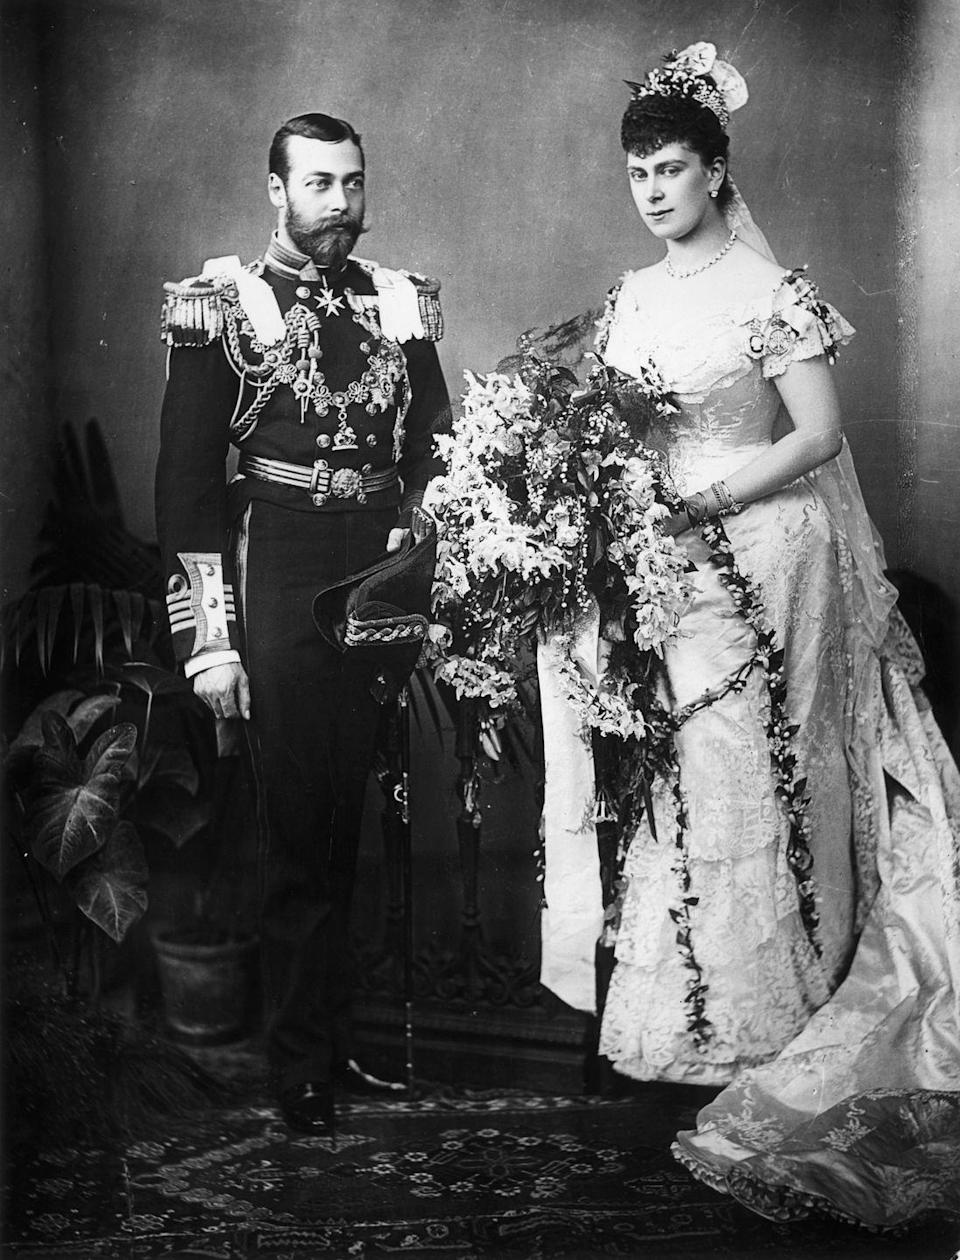 "<p>King George V proposed to Mary of Teck in May 1893 under unusual circumstances. Mary was <a href=""https://www.thehistorypress.co.uk/articles/royal-engagement-rings-through-the-centuries/"" rel=""nofollow noopener"" target=""_blank"" data-ylk=""slk:previously engaged to his older brother"" class=""link rapid-noclick-resp"">previously engaged to his older brother</a>, Prince Albert Victor, who died of pneumonia during their engagement in 1892. The couple was pressured into marriage and wed on July 6, 1893. </p>"